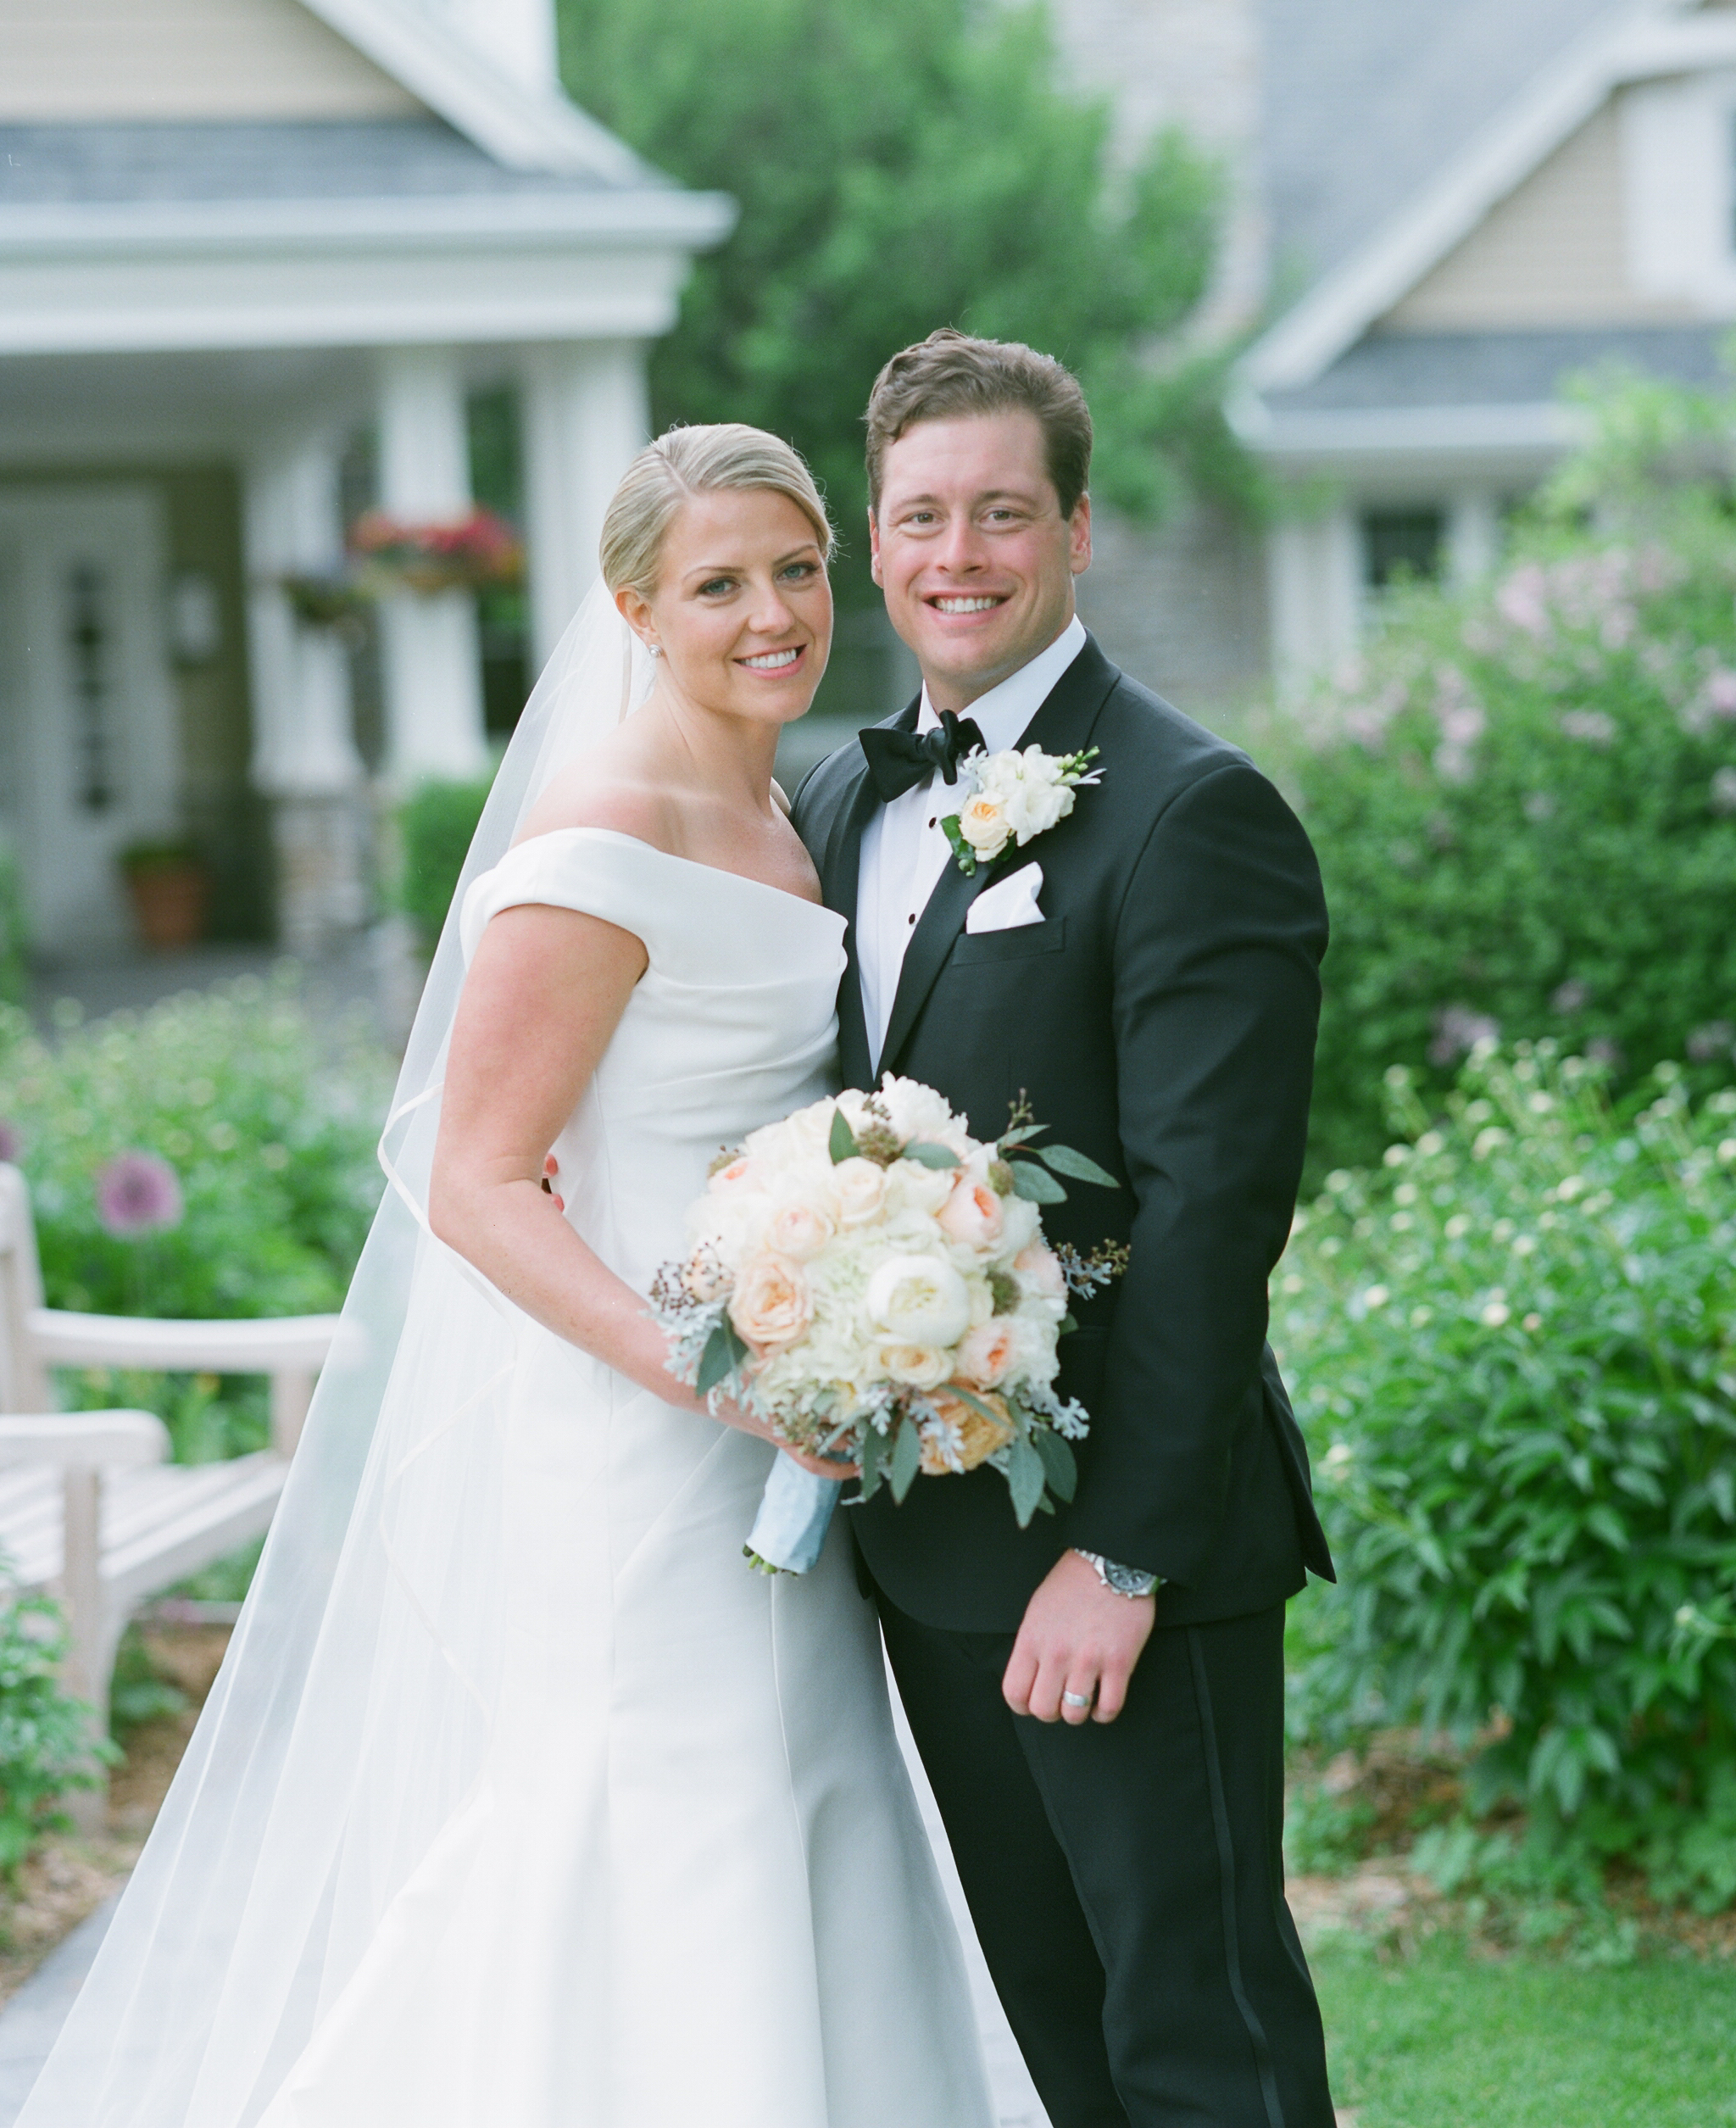 classic door county wedding portrait at horseshoe bay golf club